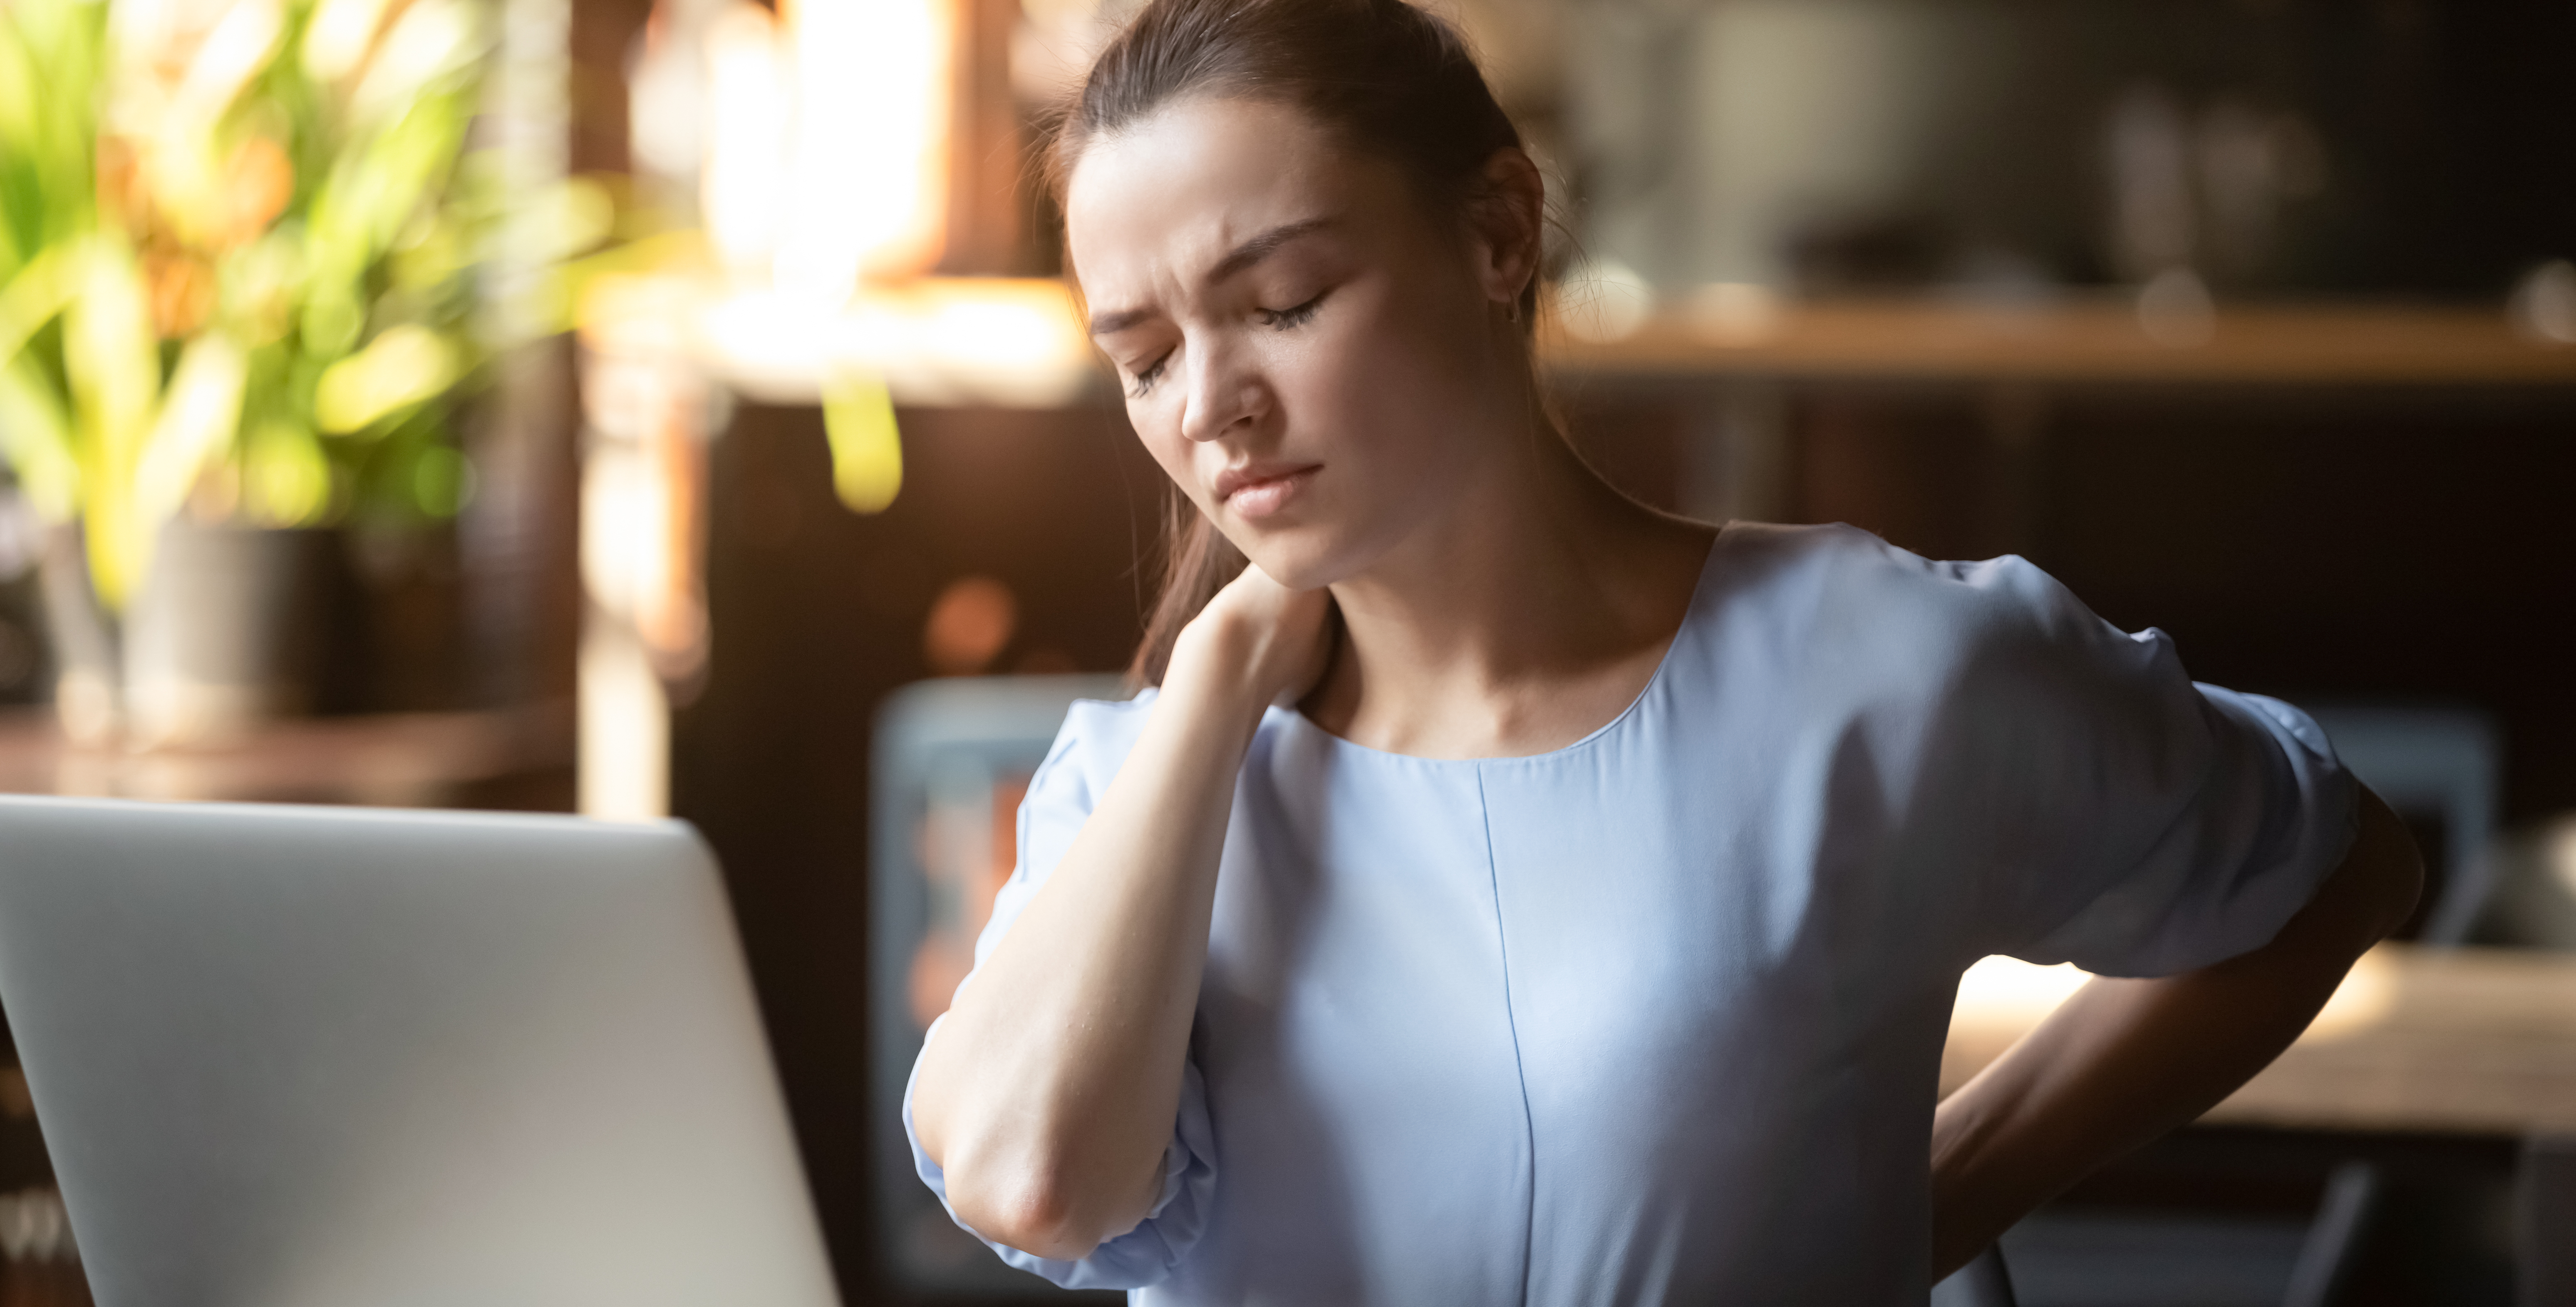 An ergonomically correct workstation can help you prevent pain